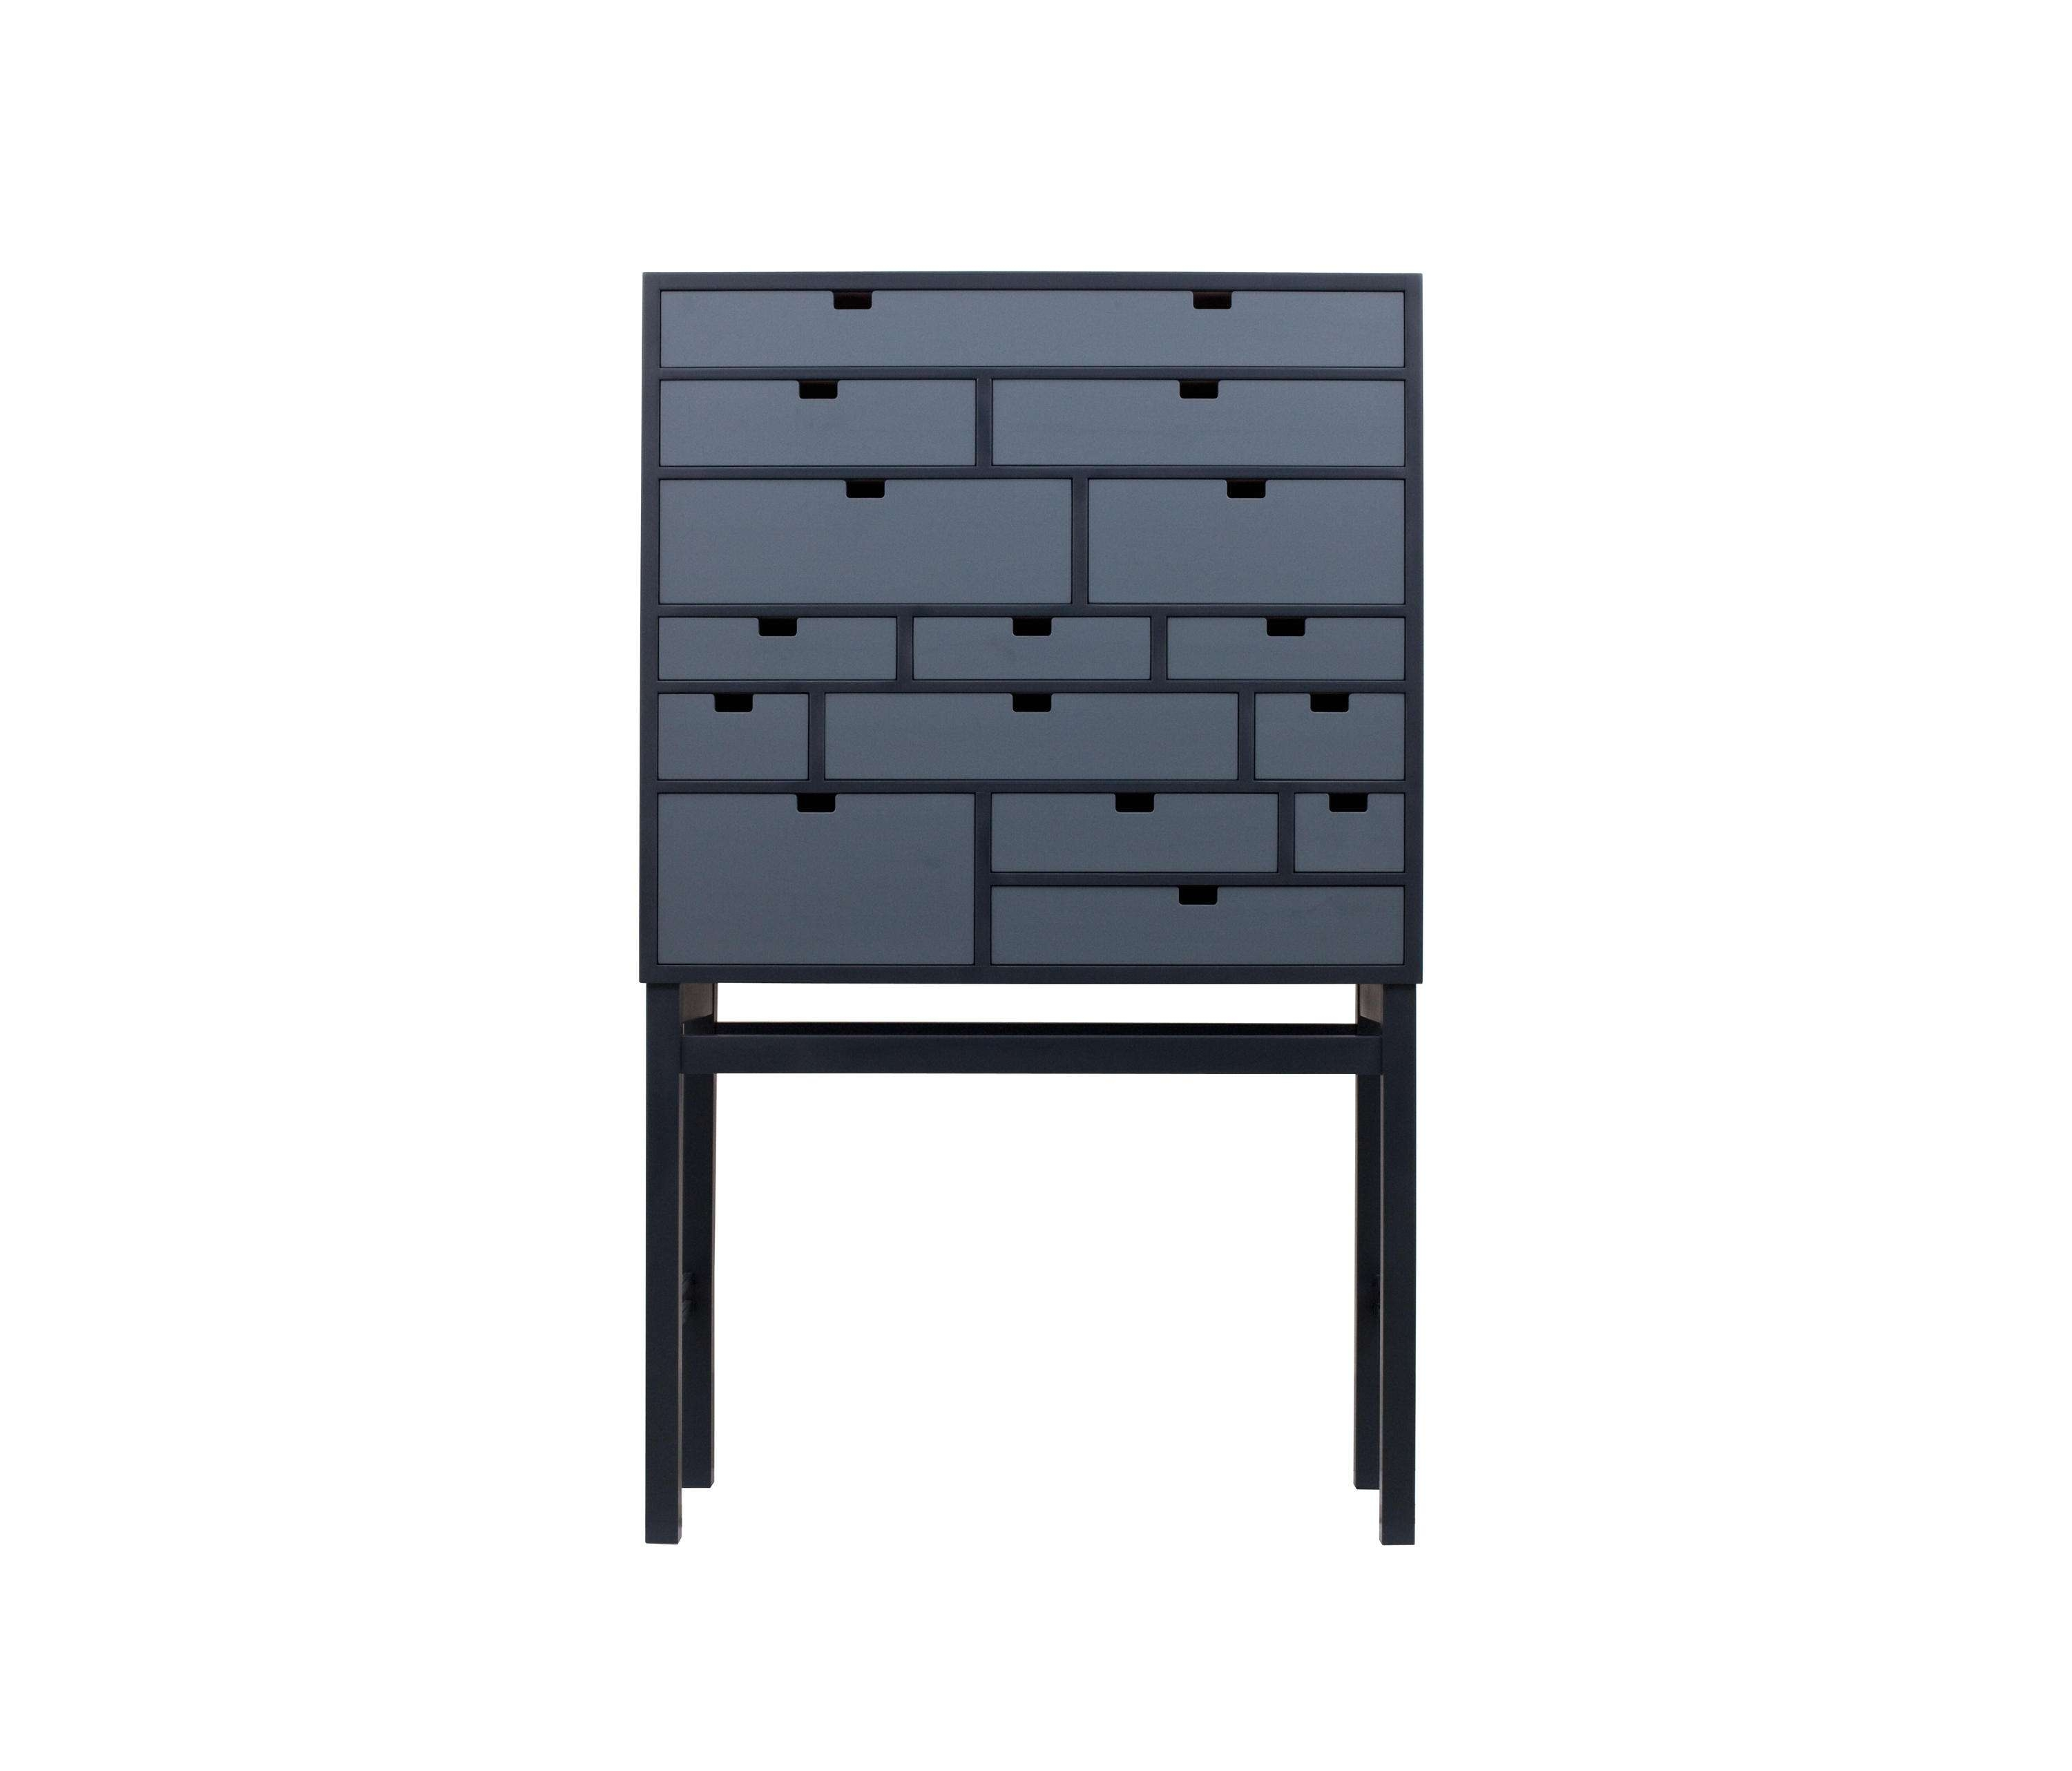 Rhapsody Chest Of Drawers – Sideboards From Olby Design | Architonic With Regard To Montana Sideboards (View 14 of 20)